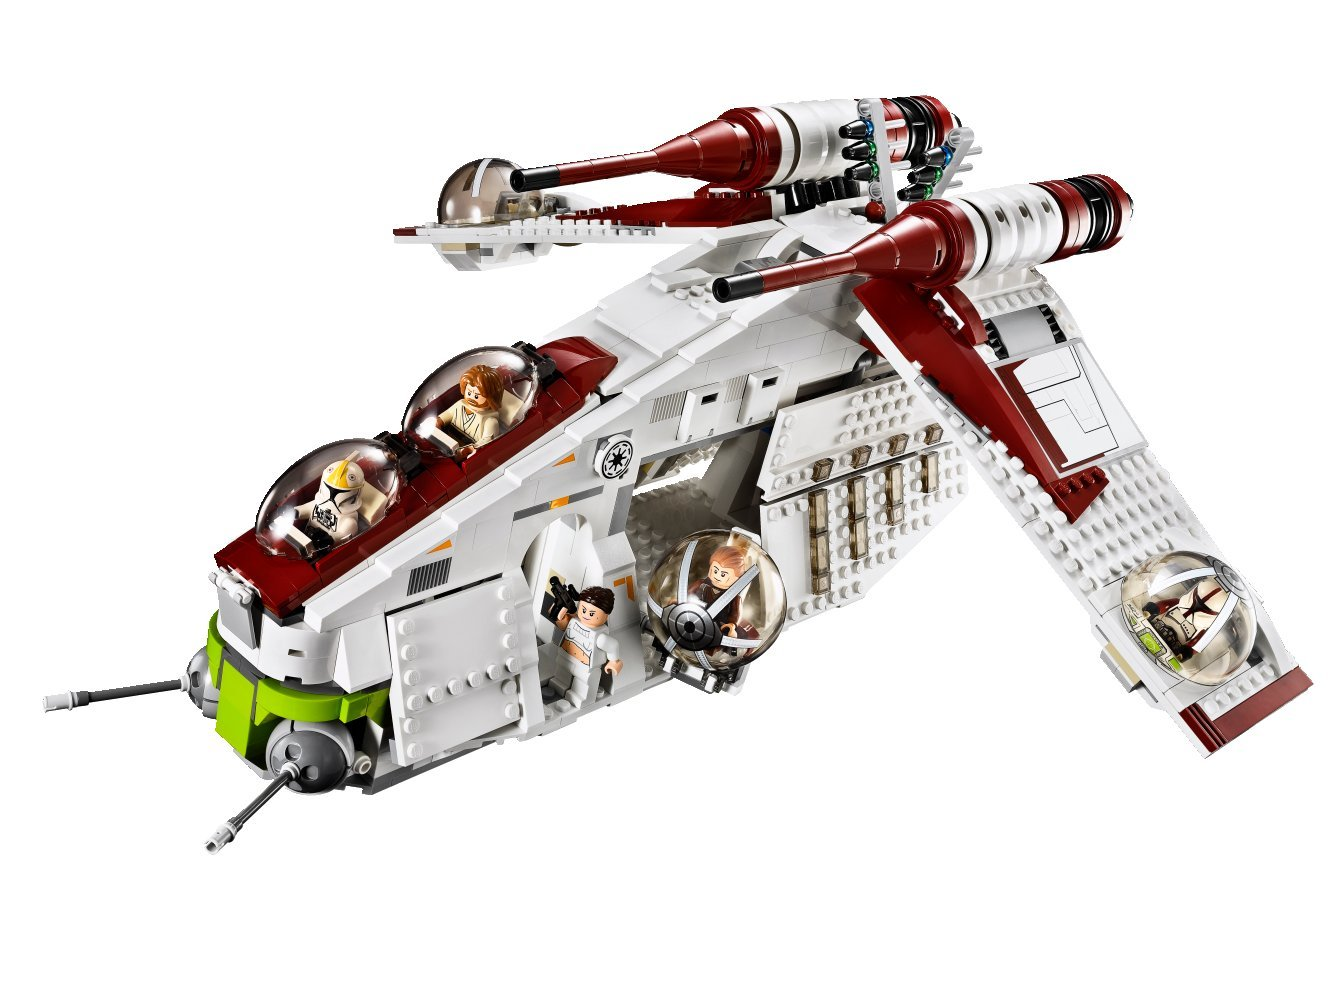 Günstig Lego Star Wars 75021 - Republic Gunship